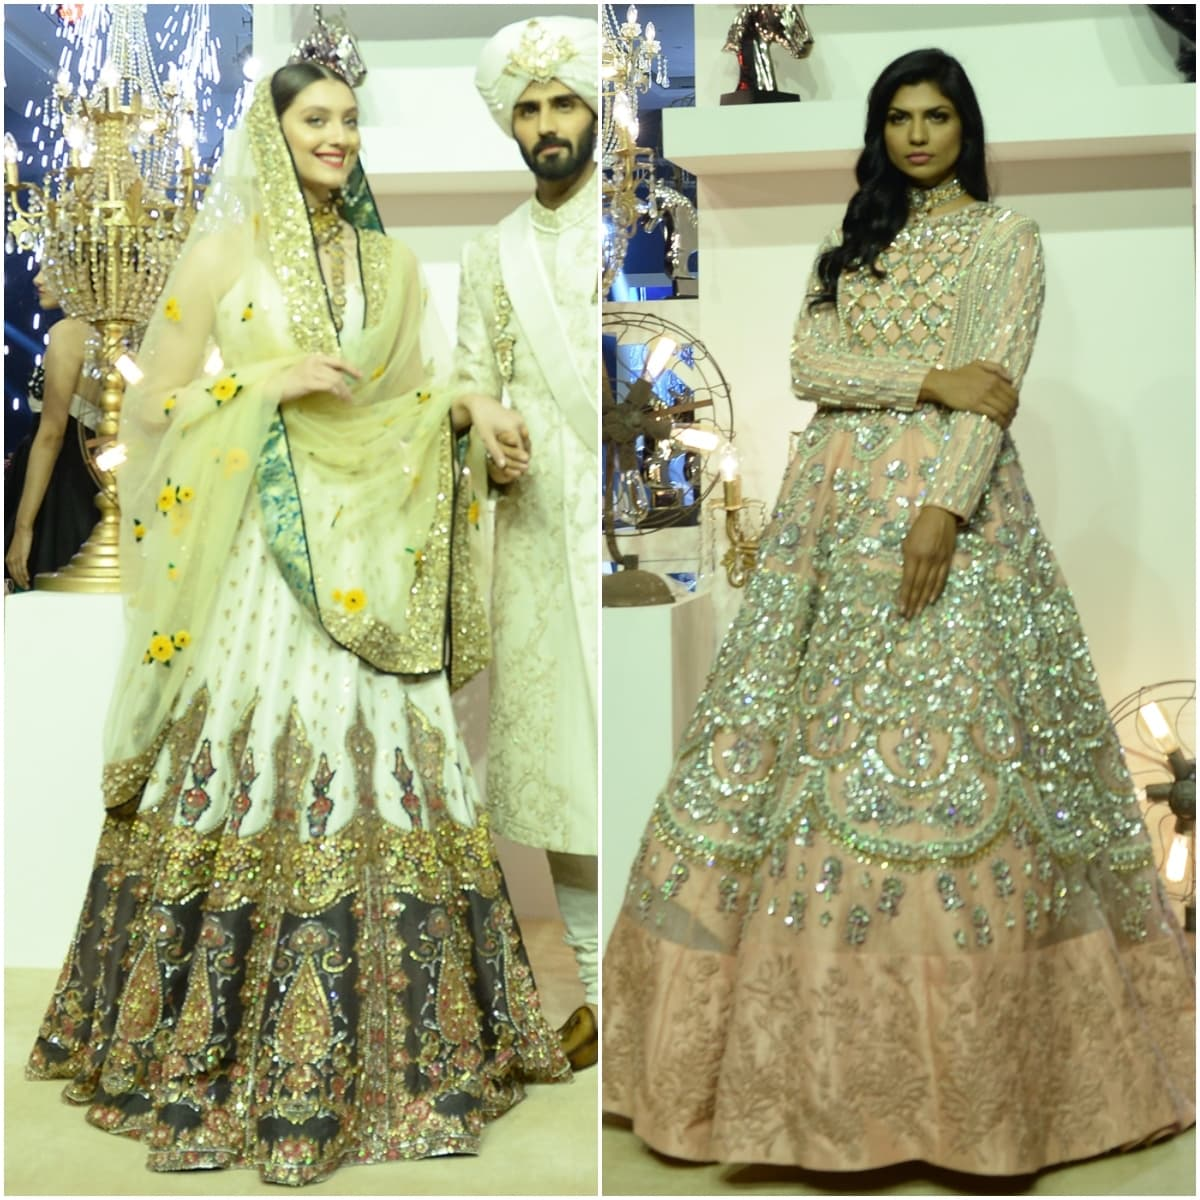 Standout pieces from Ali Xeeshan's Ijaazat